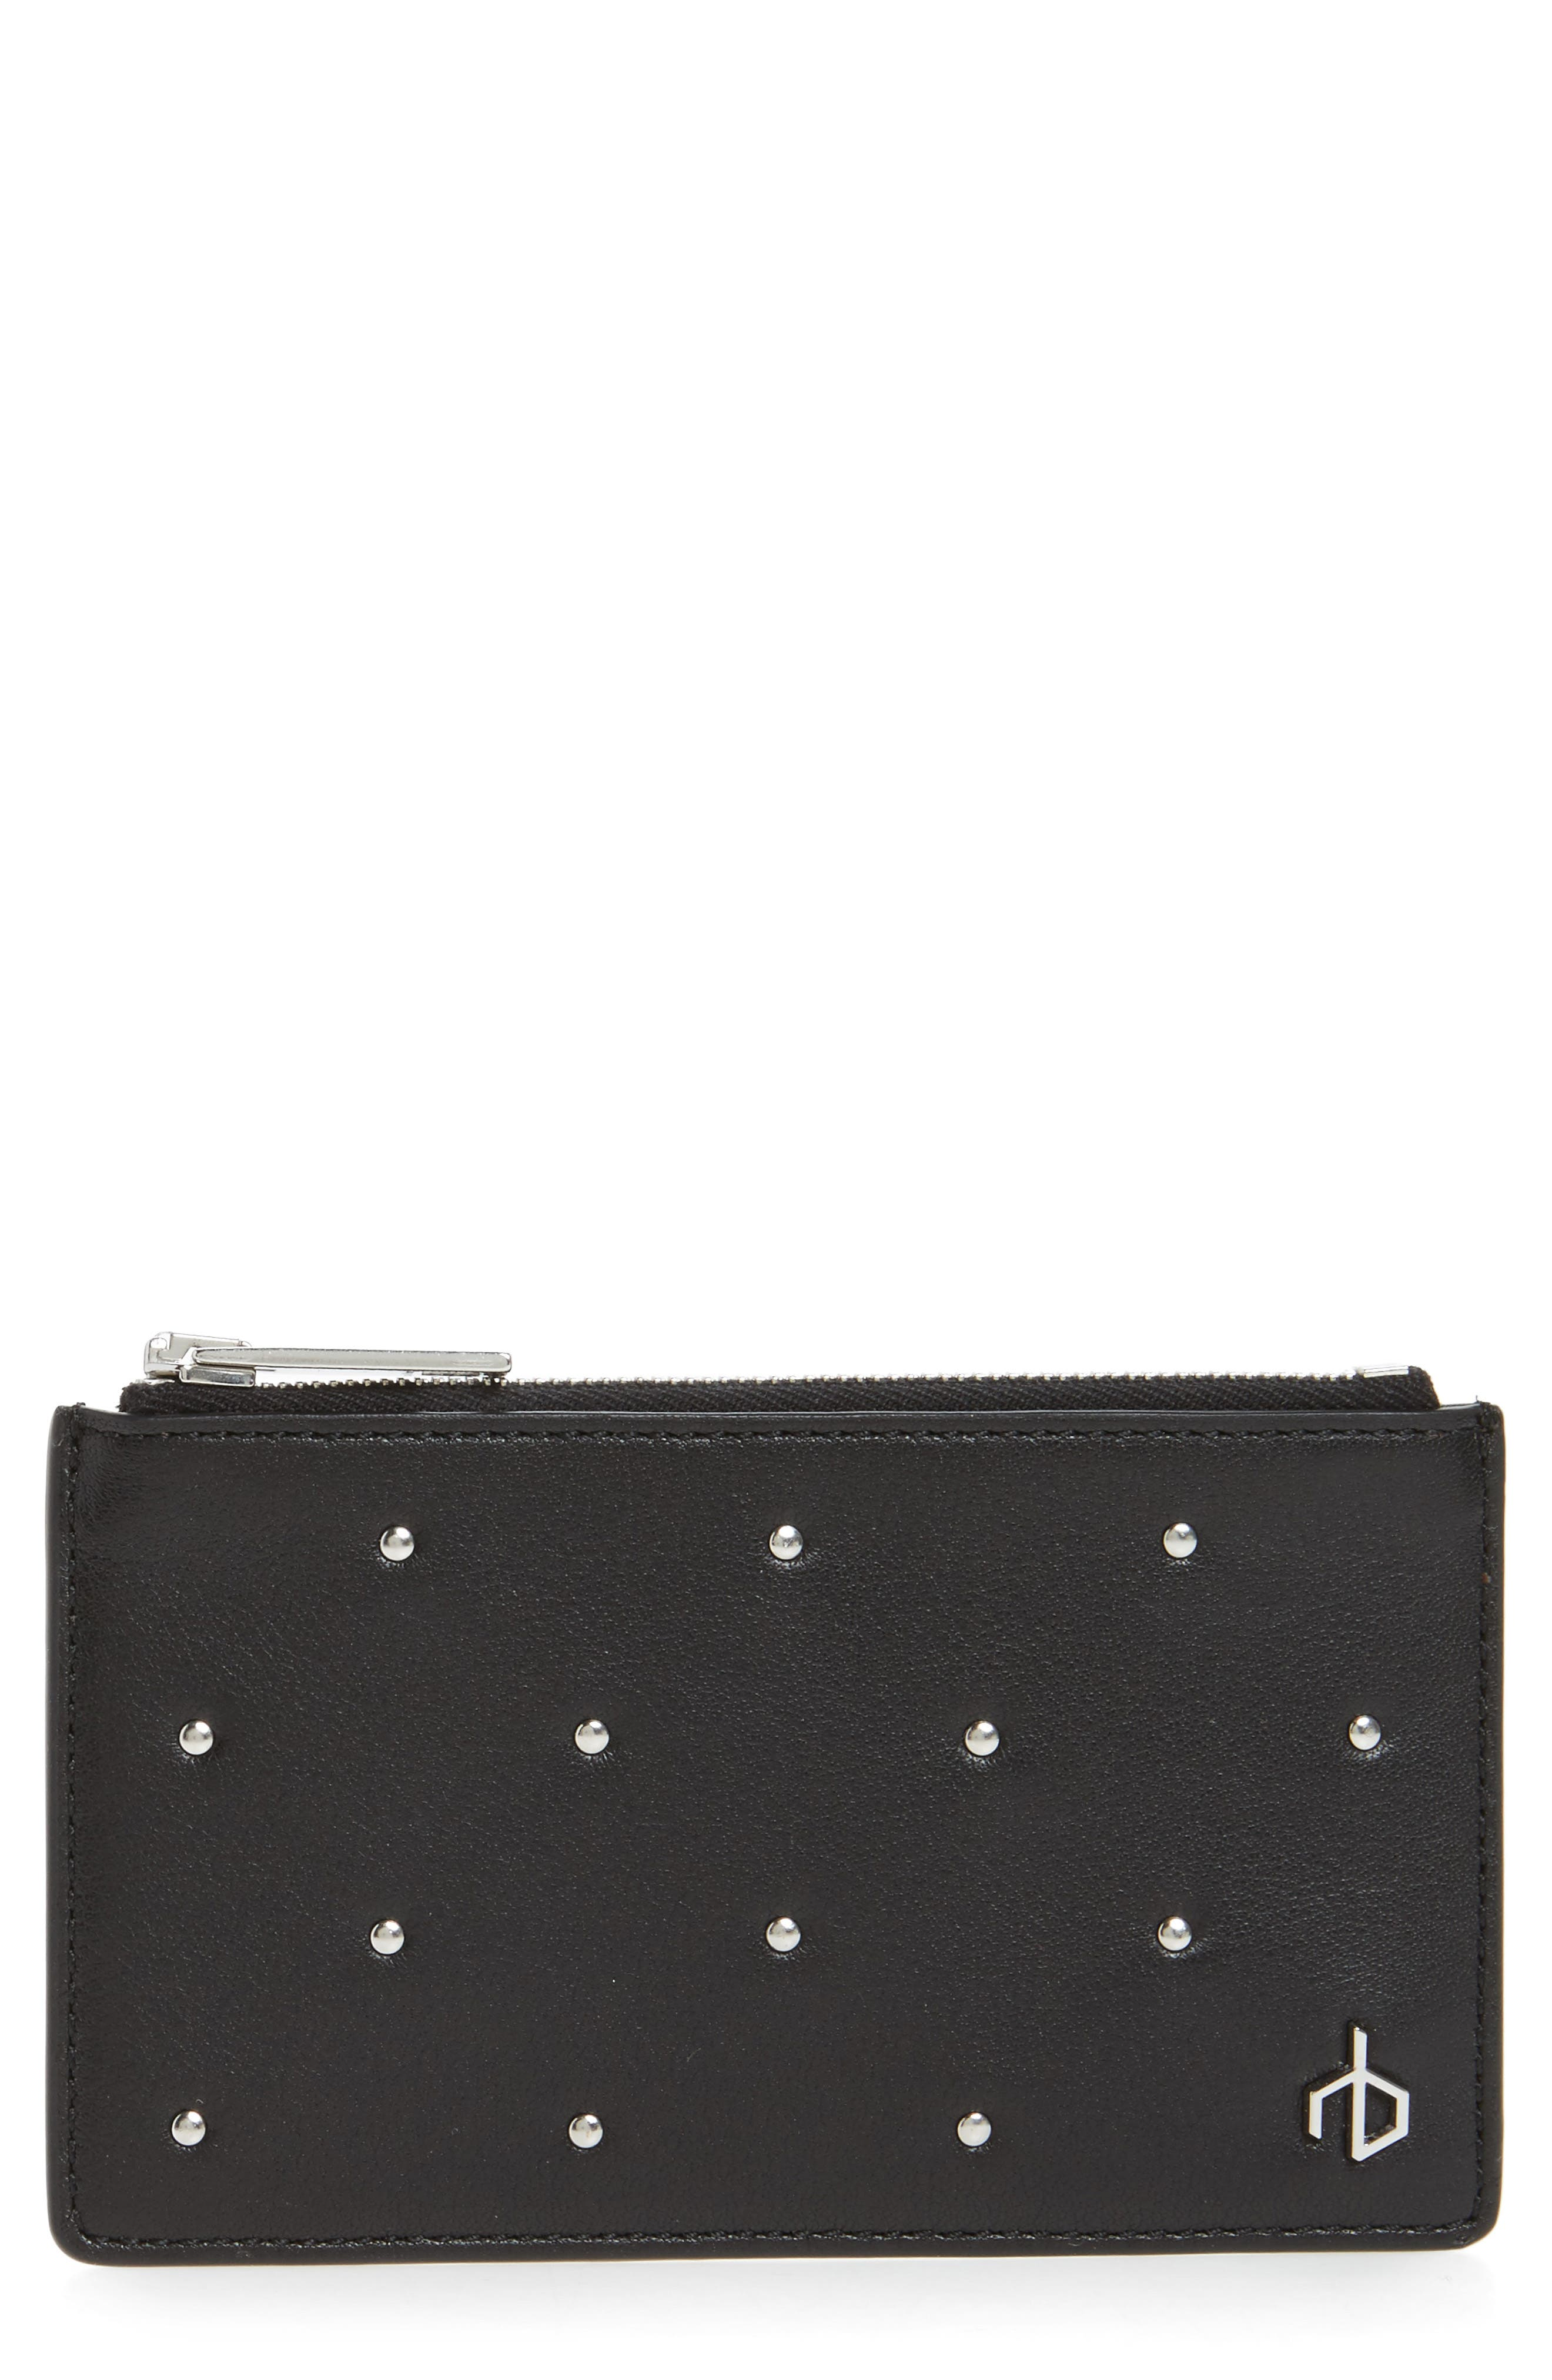 Studded Leather Card Case,                             Main thumbnail 1, color,                             Black Studs